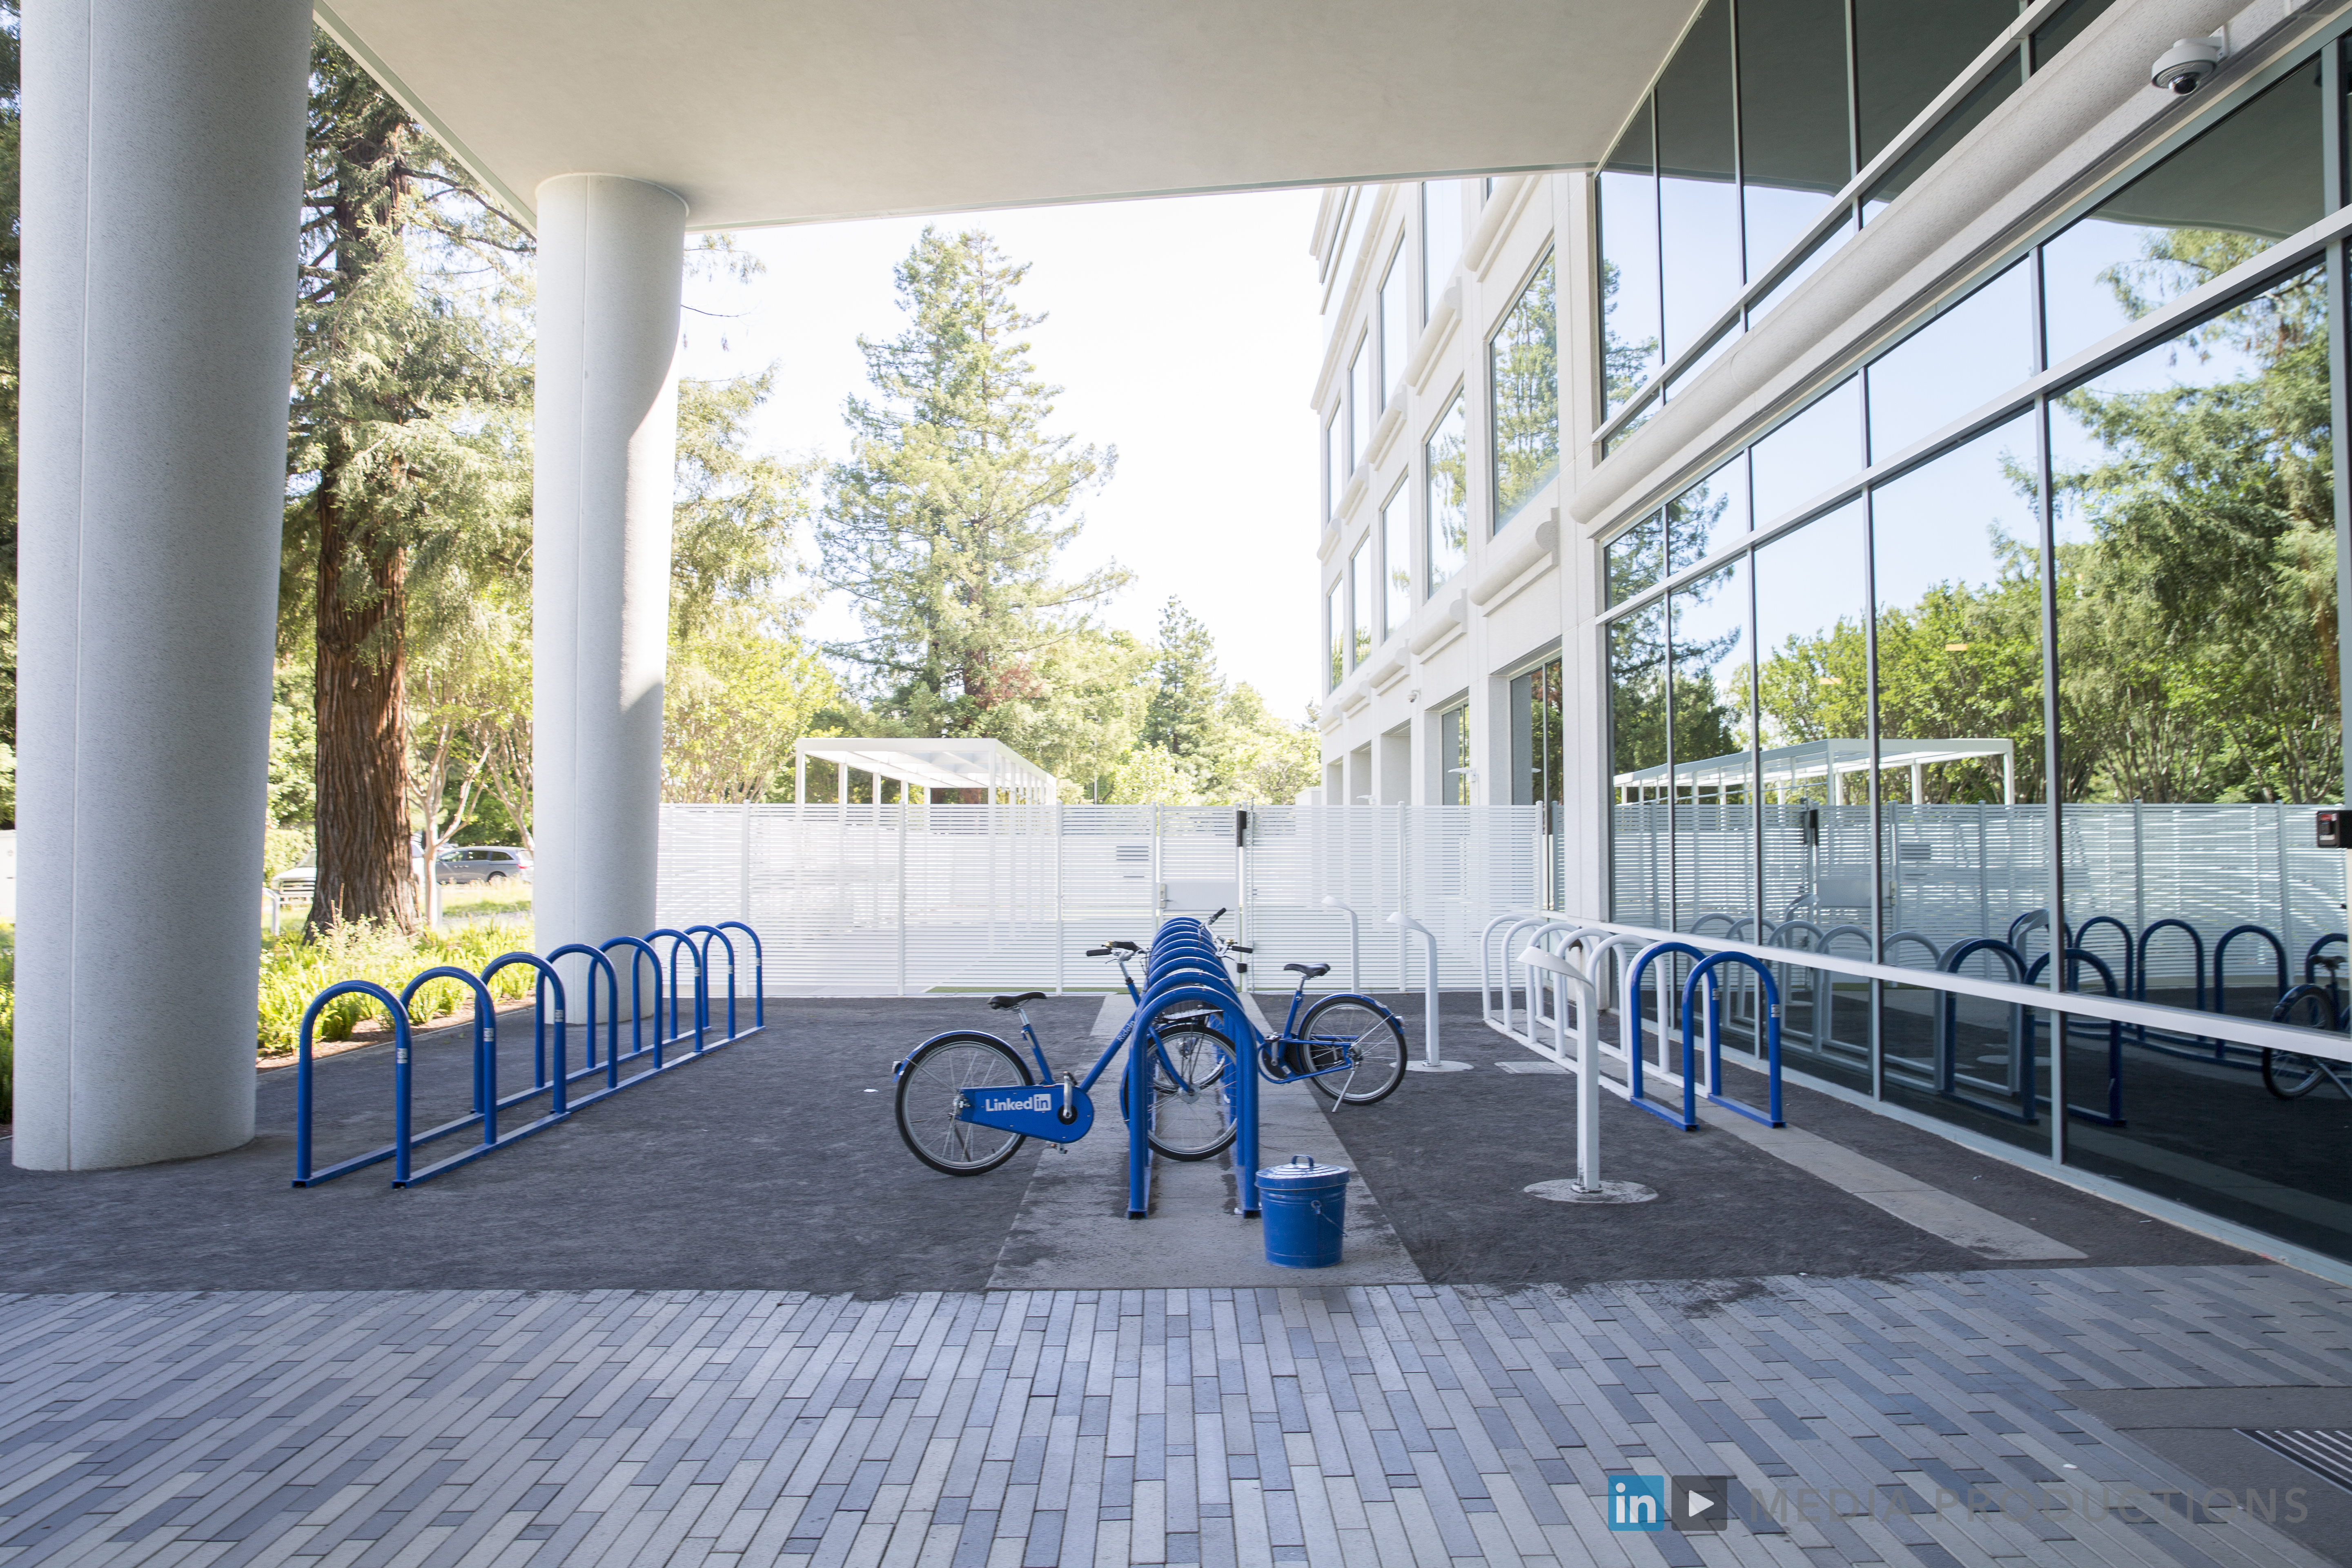 LinkedIn bike parking